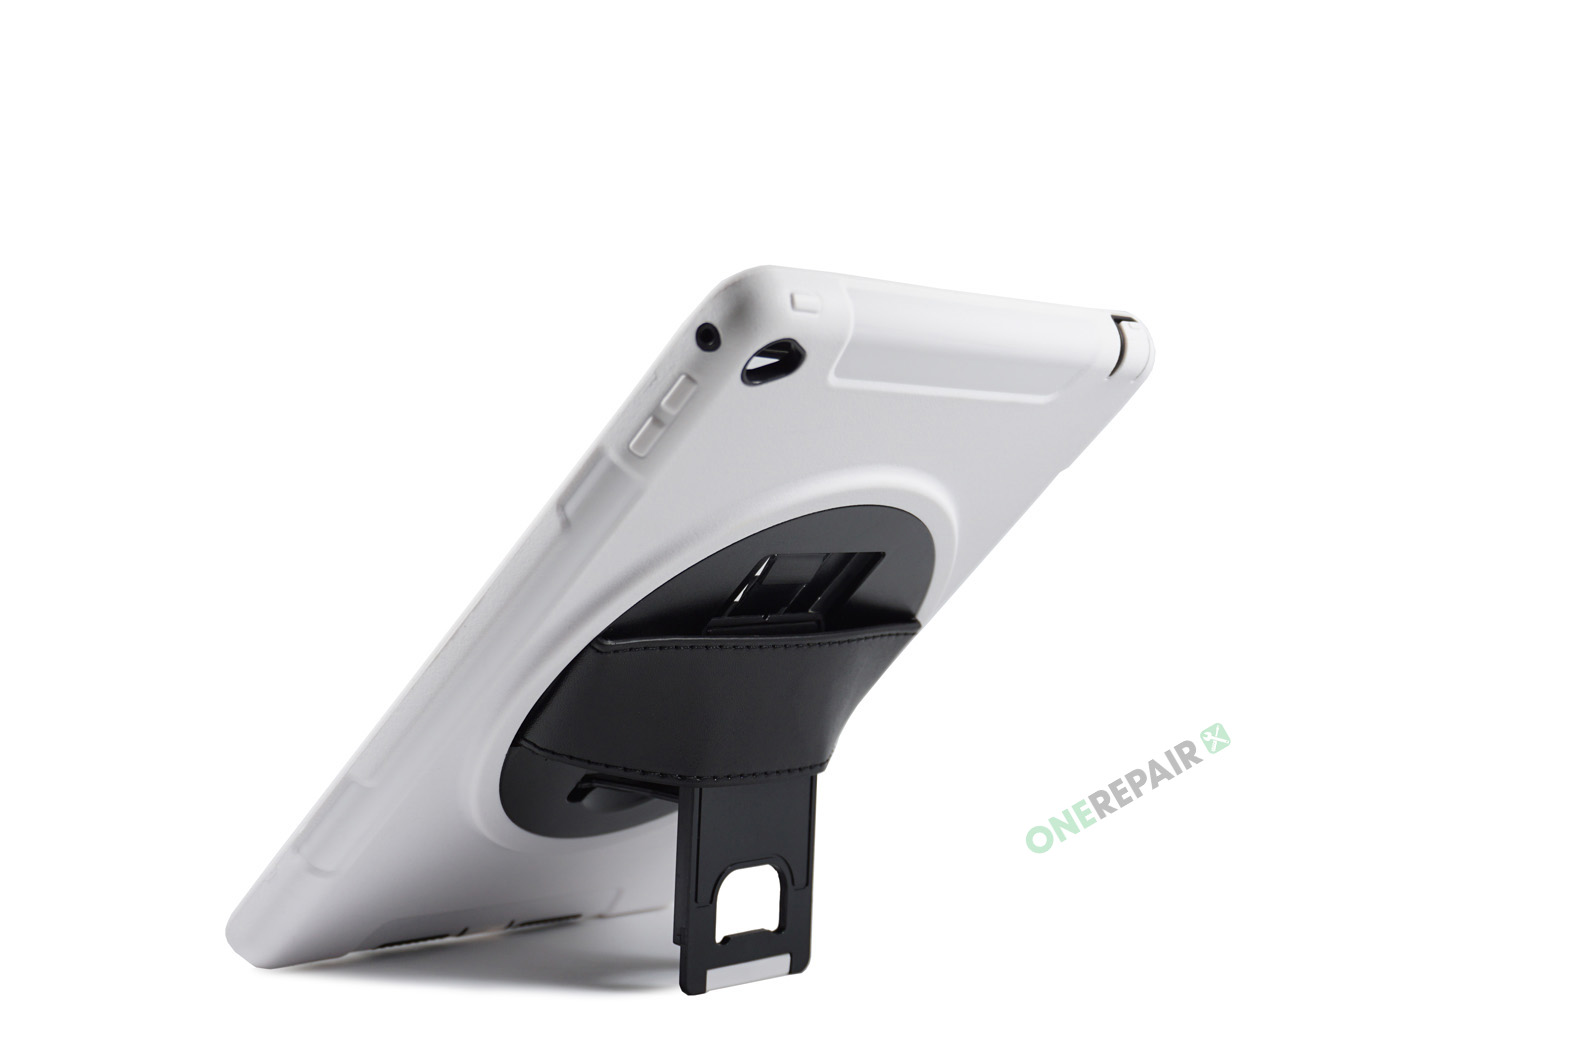 351070_iPad_Air2_2_A1566_A1567_3-in-1_Thin_Boernecover_Børne_Hardcase_Cover_Hvid_Graa_OneRepair_00004